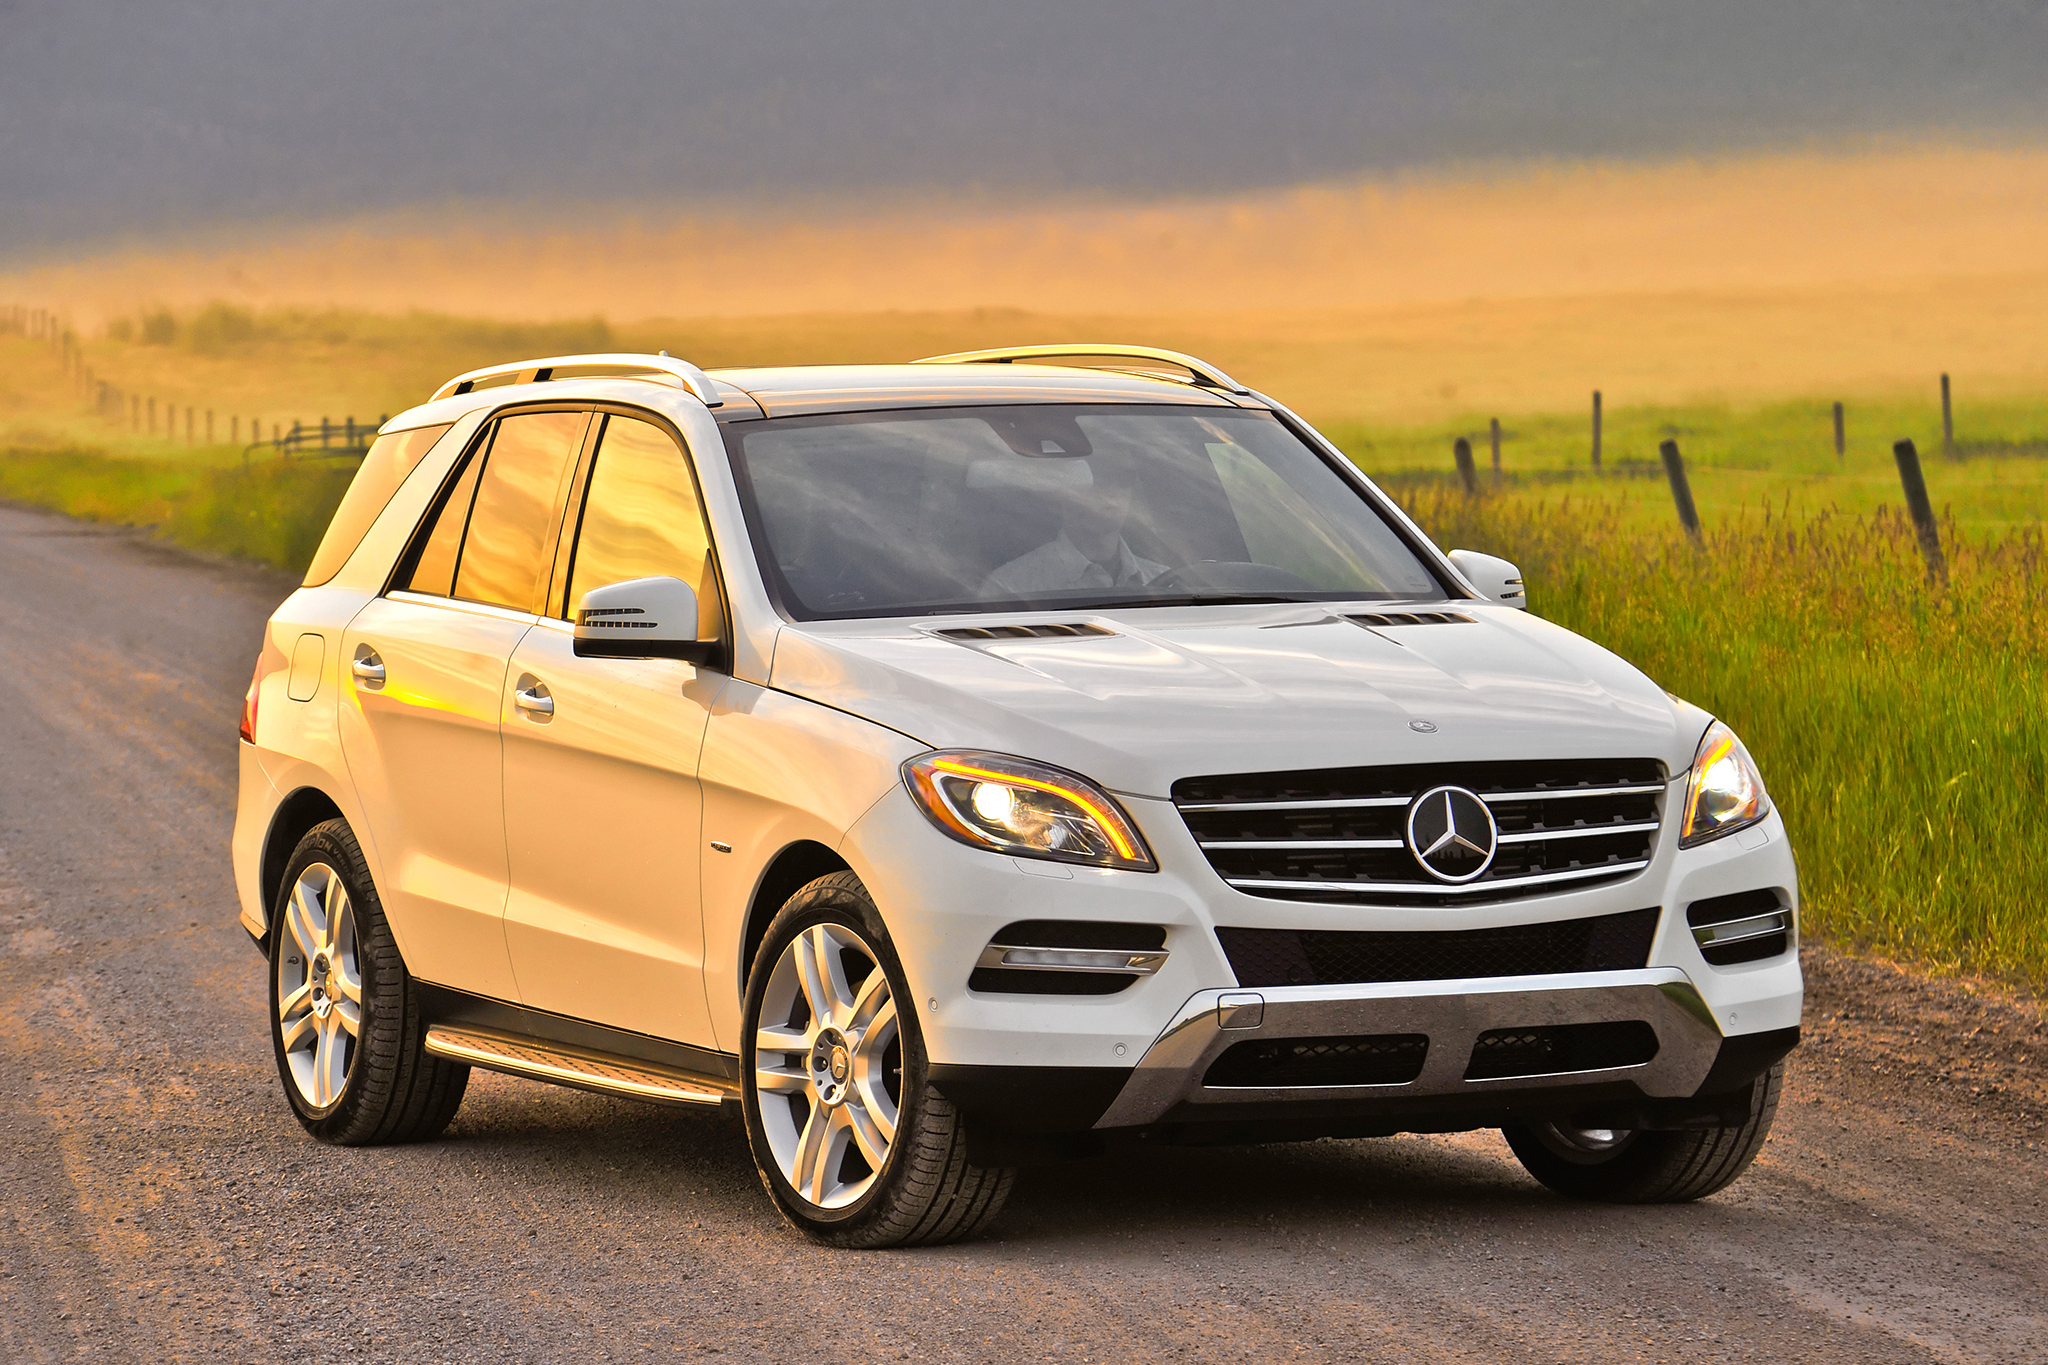 exterior older img the cylinder best body buyer diesel problems failure video woes buy sale what beware and benz demand on mercedes gasket is for part trim removal to head